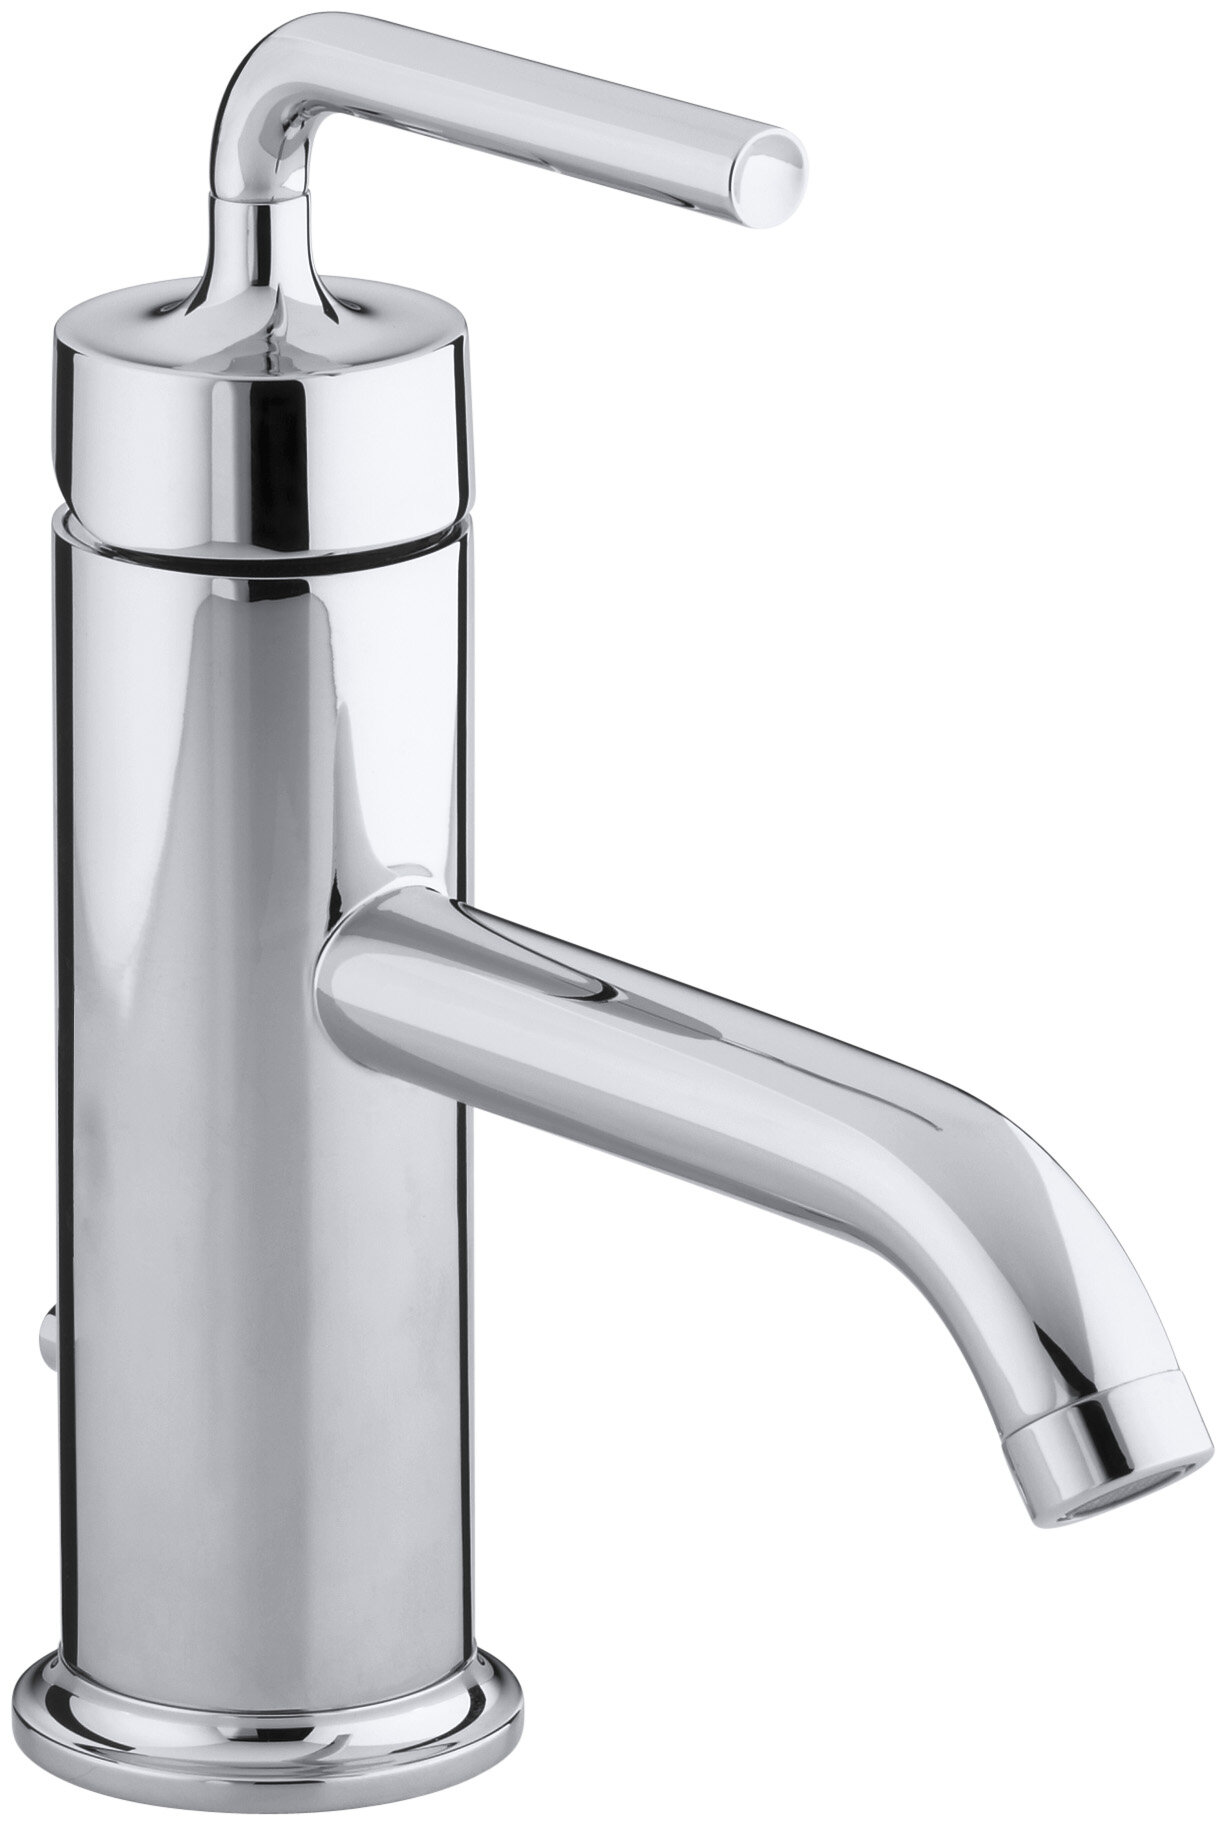 K-14402-4A-BGD,BN,BV Kohler Purist Single hole Bathroom Faucet with ...